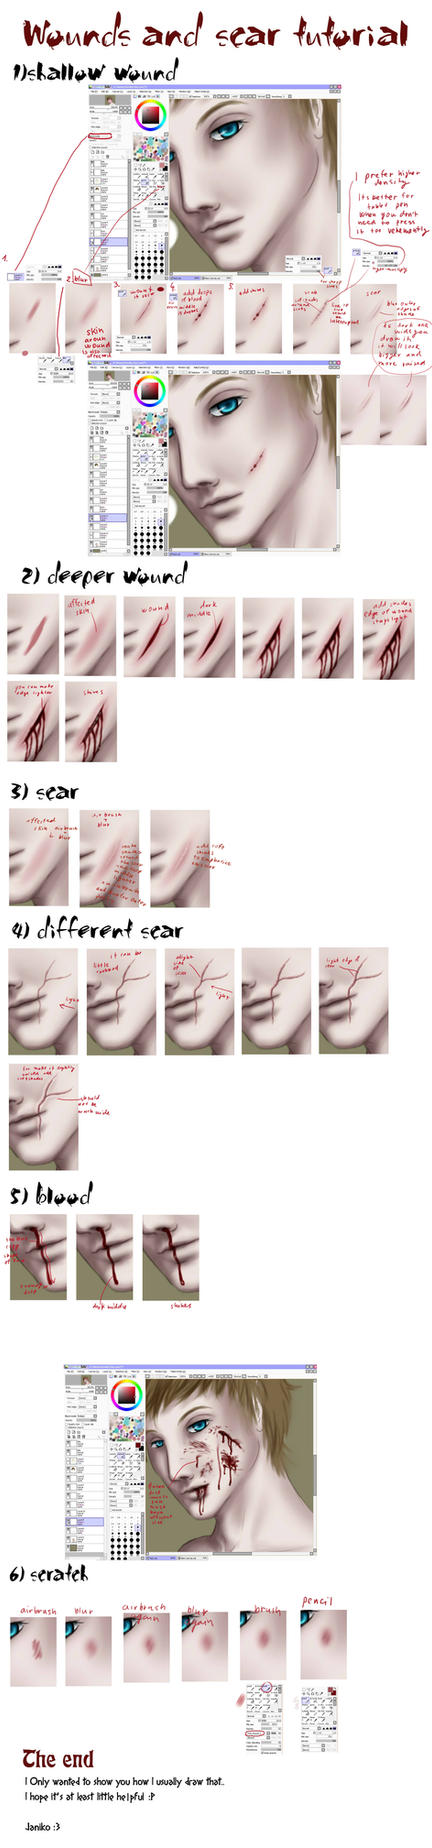 Wounds and scars tutorial by Janiko-neko-chan